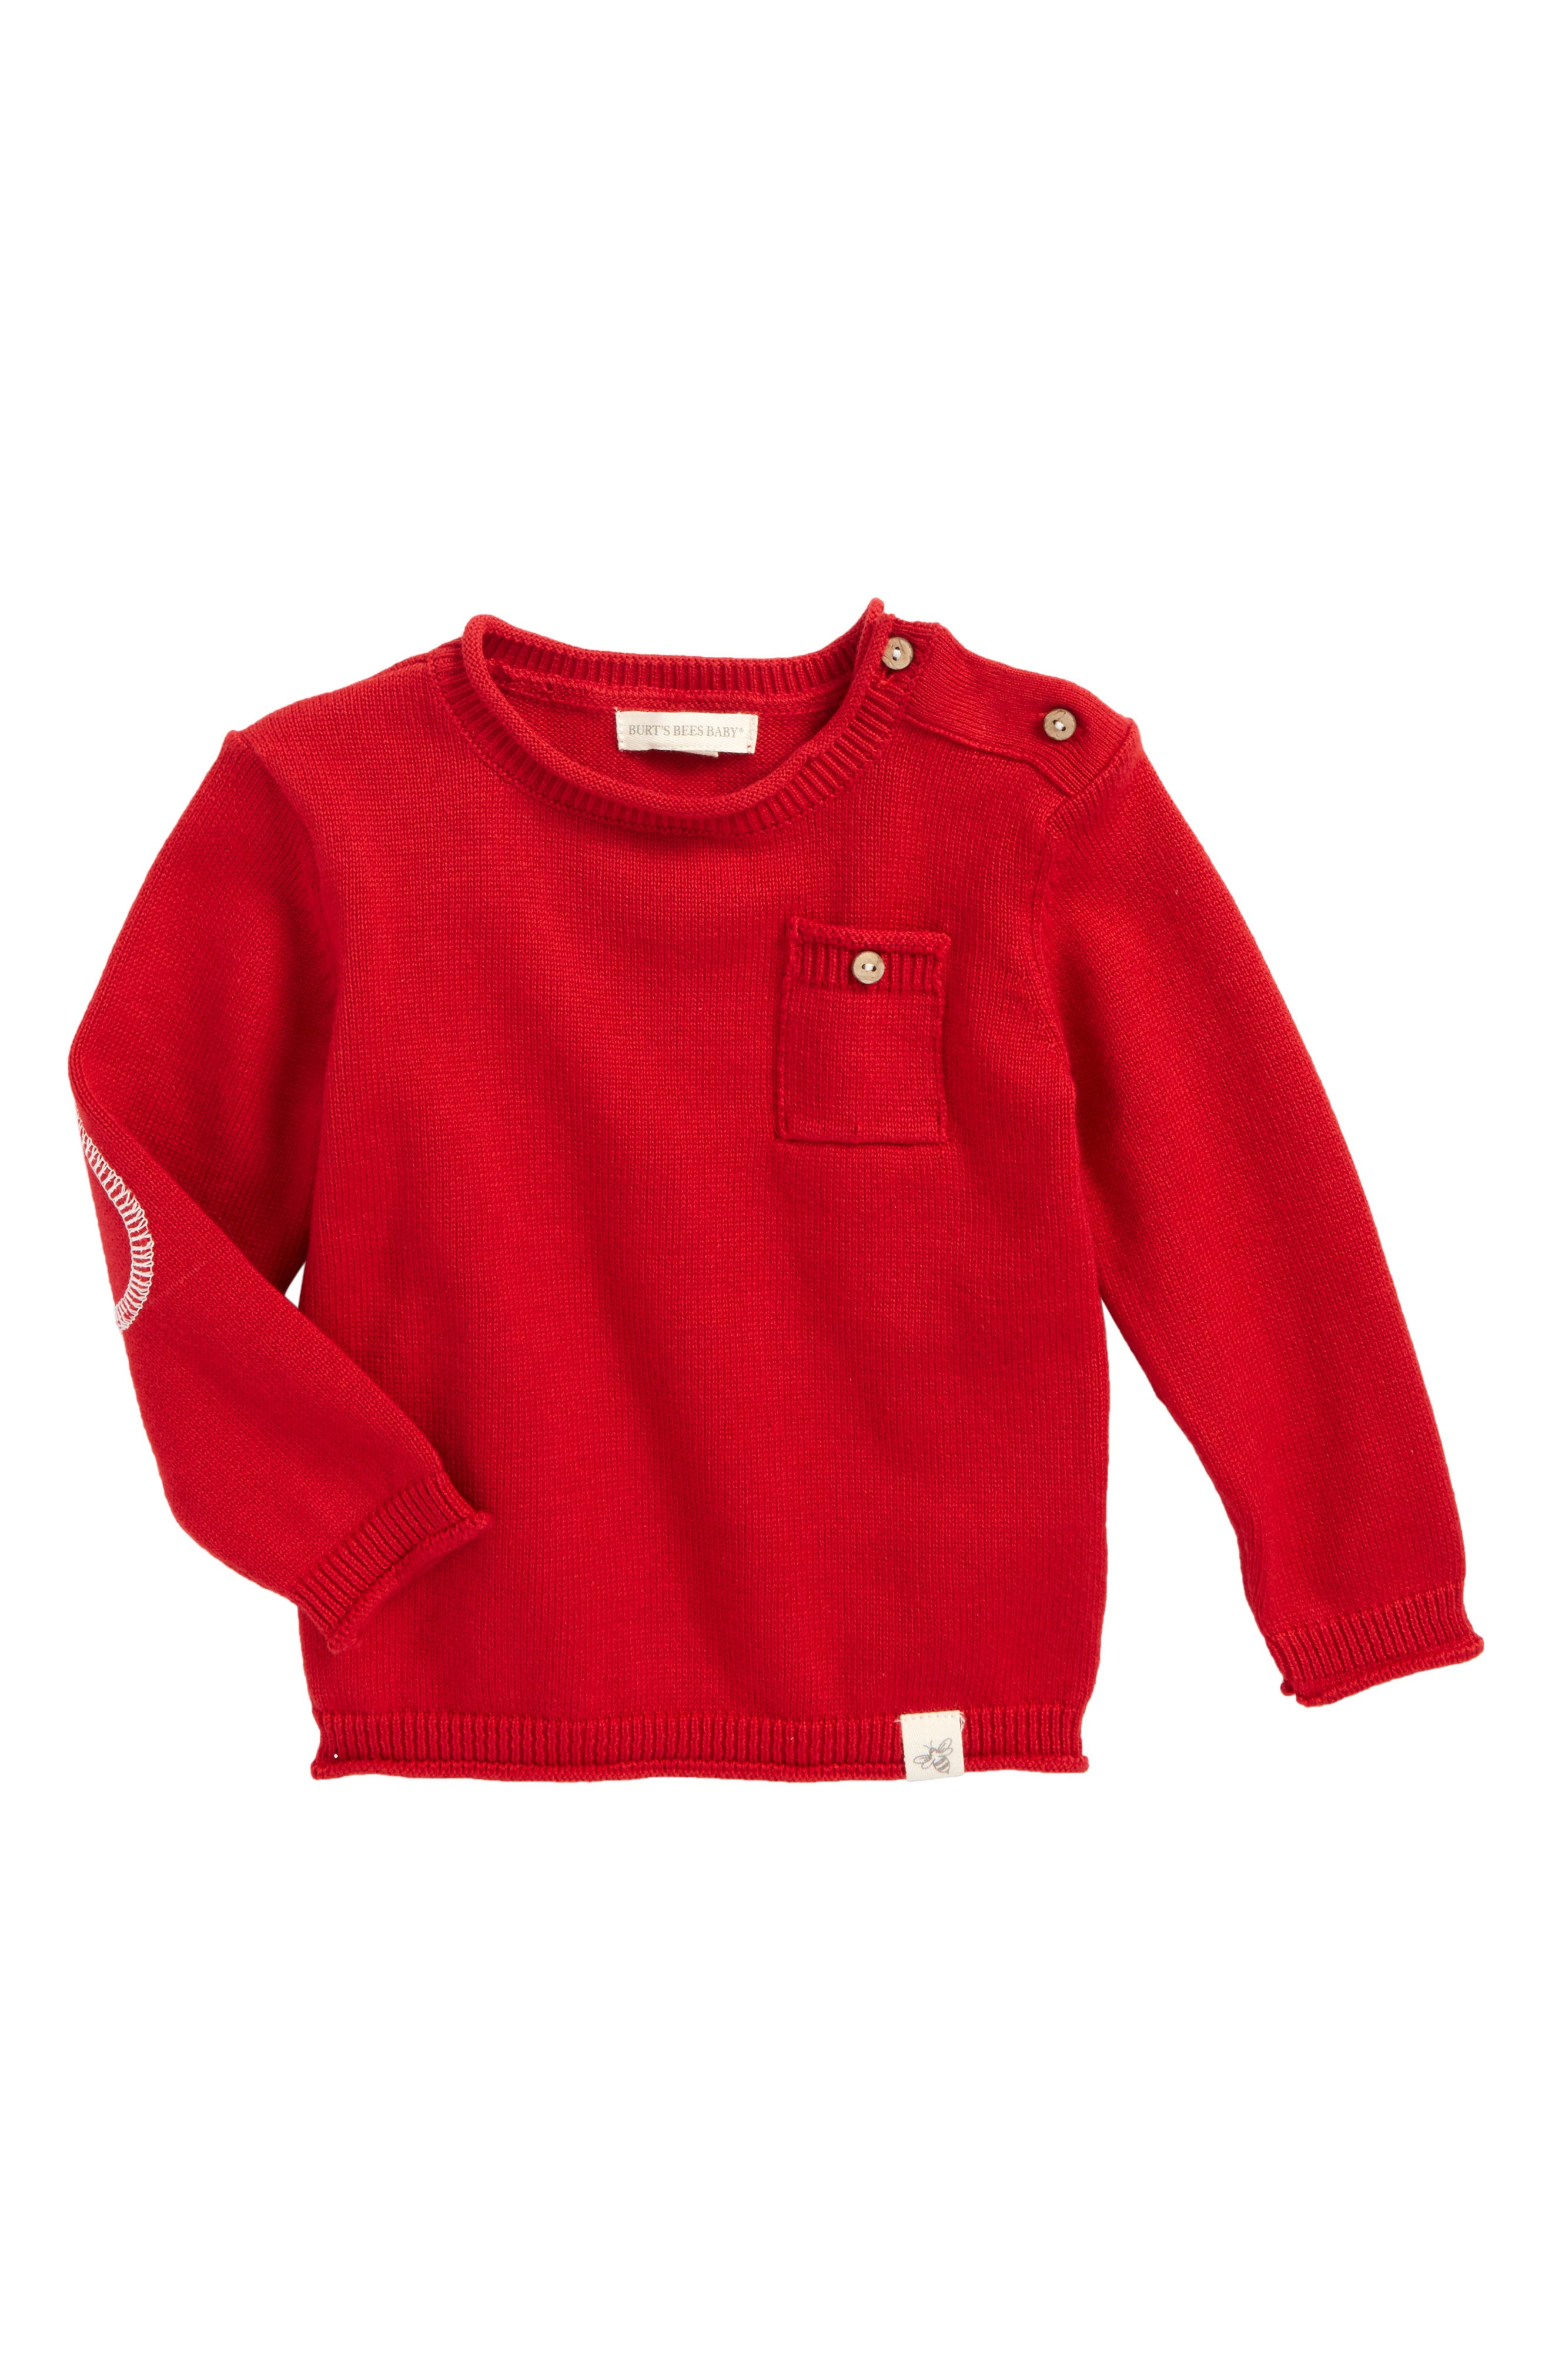 Main Image - Burt's Bees Baby Pocket Organic Cotton Sweater (Baby Boys)